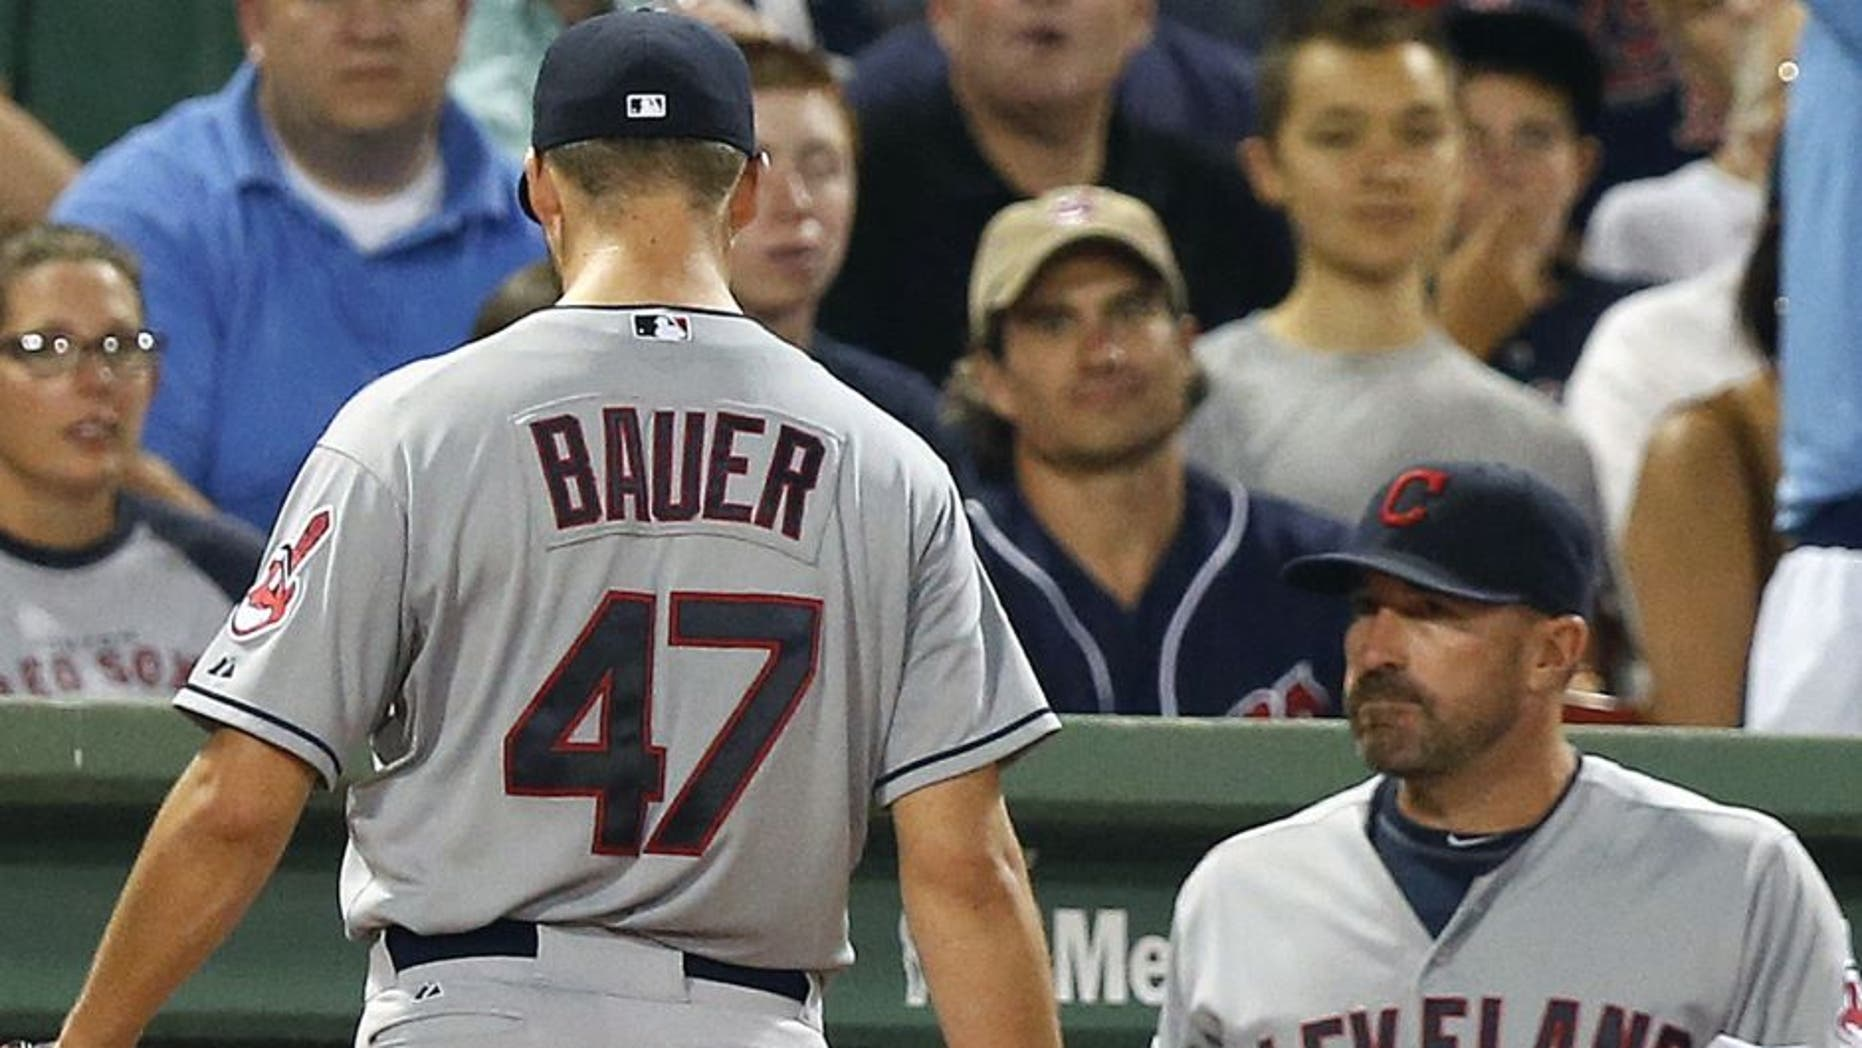 Trevor Bauer leaves the baseball game after being taken out during the second inning after giving up five runs vs. the Boston Red Sox